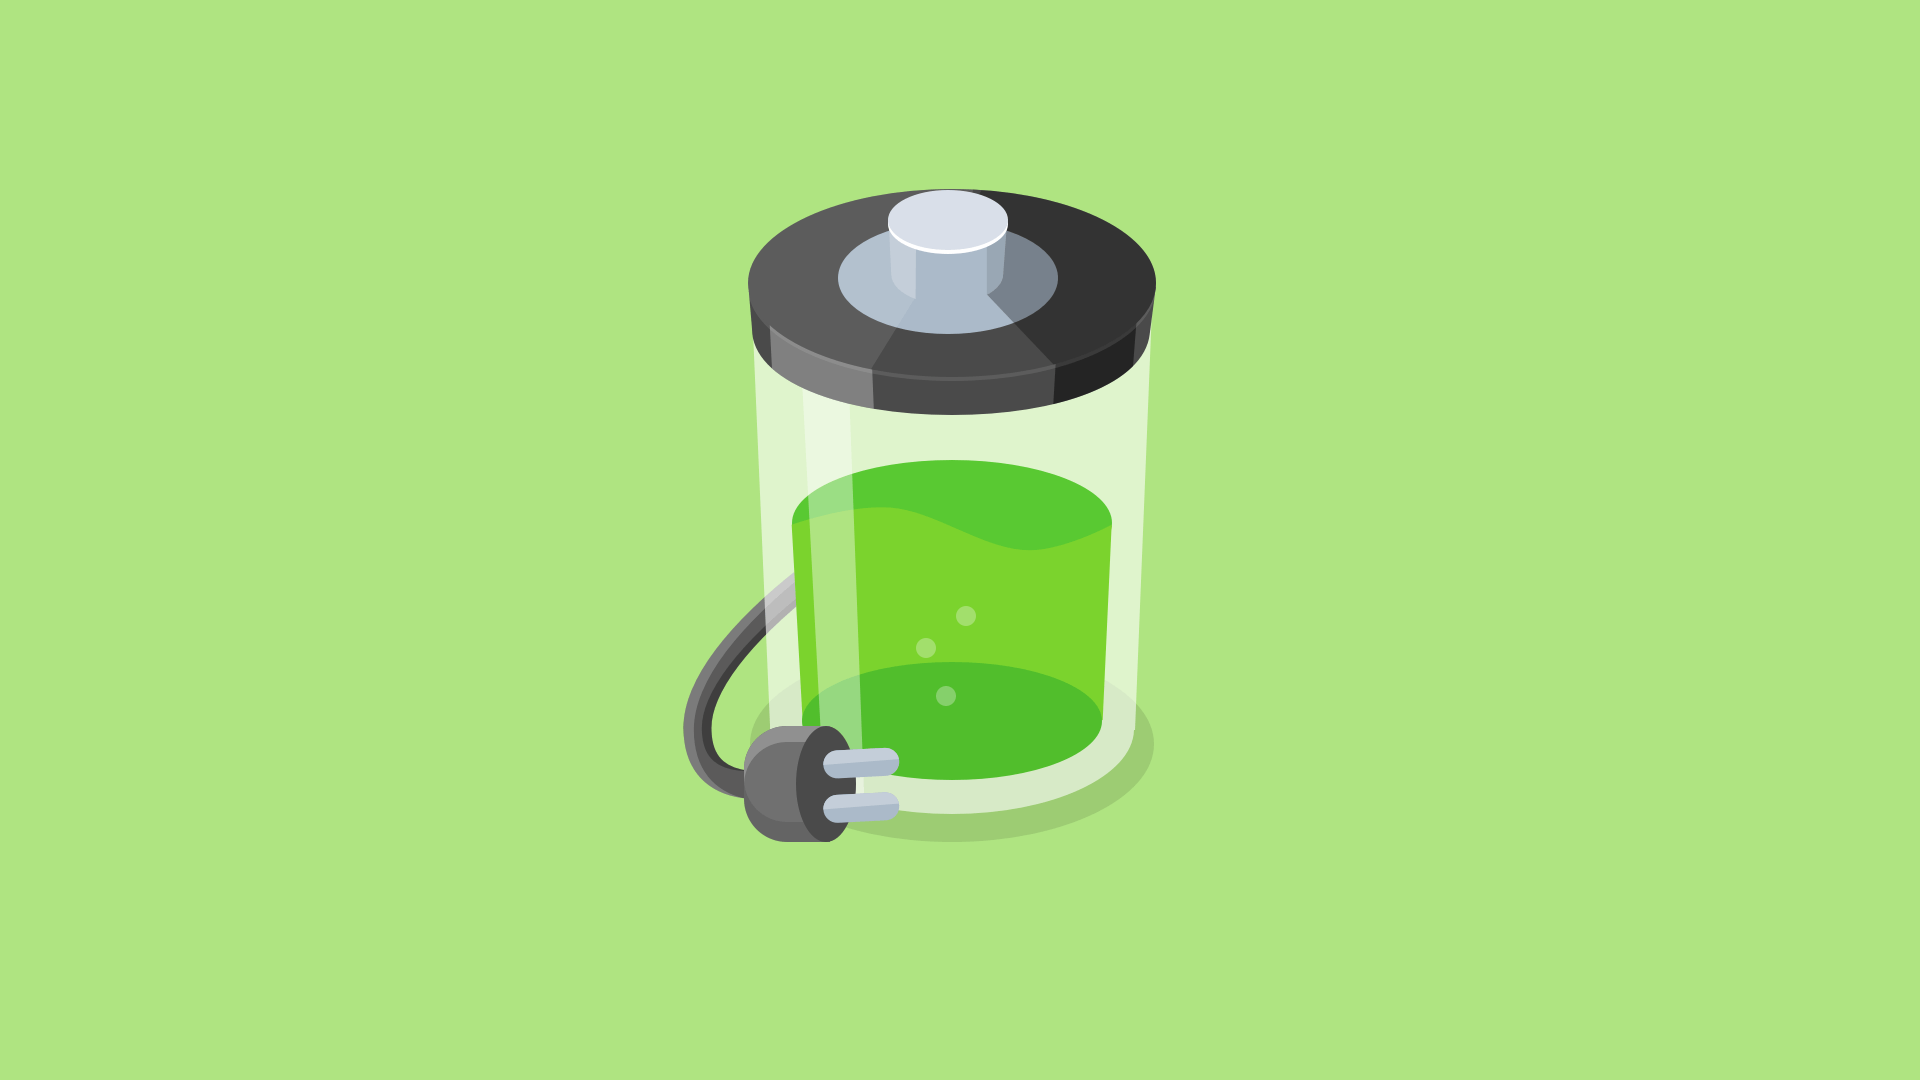 battery-doctor-illustration-1.png